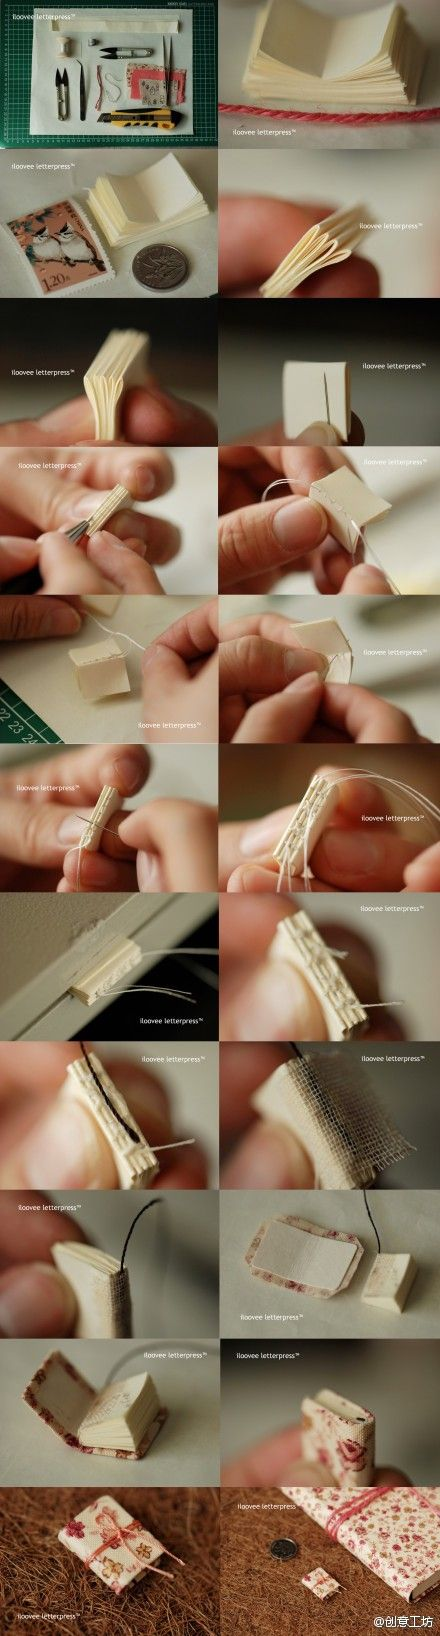 Bookbinding mini book; just in case you wanted to know.